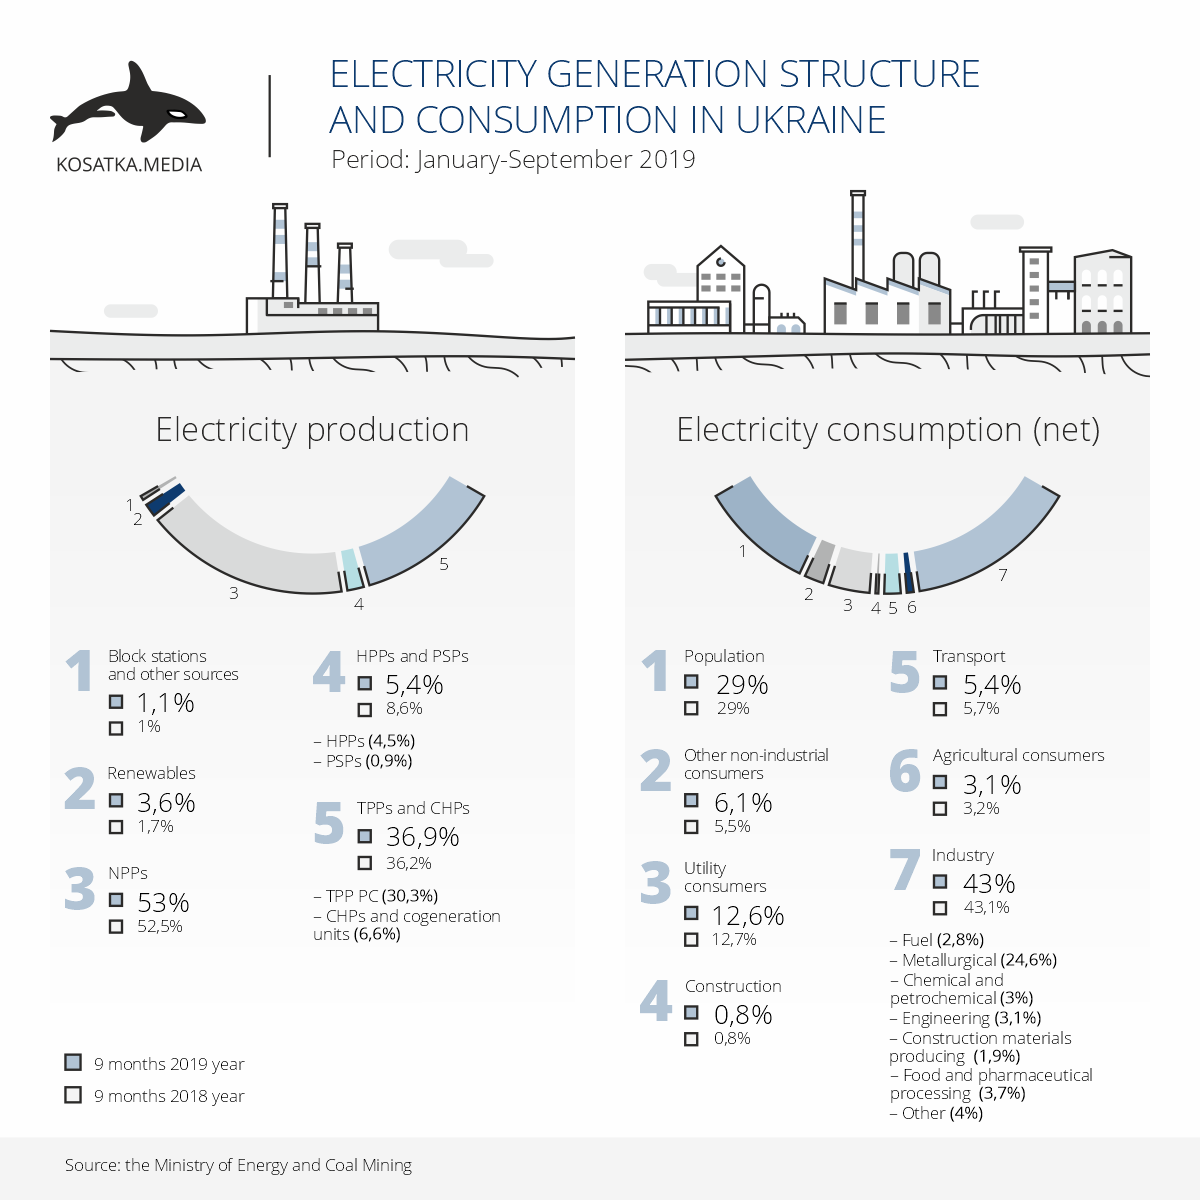 Electricity generation and consumpsion structures (January-September 2019)